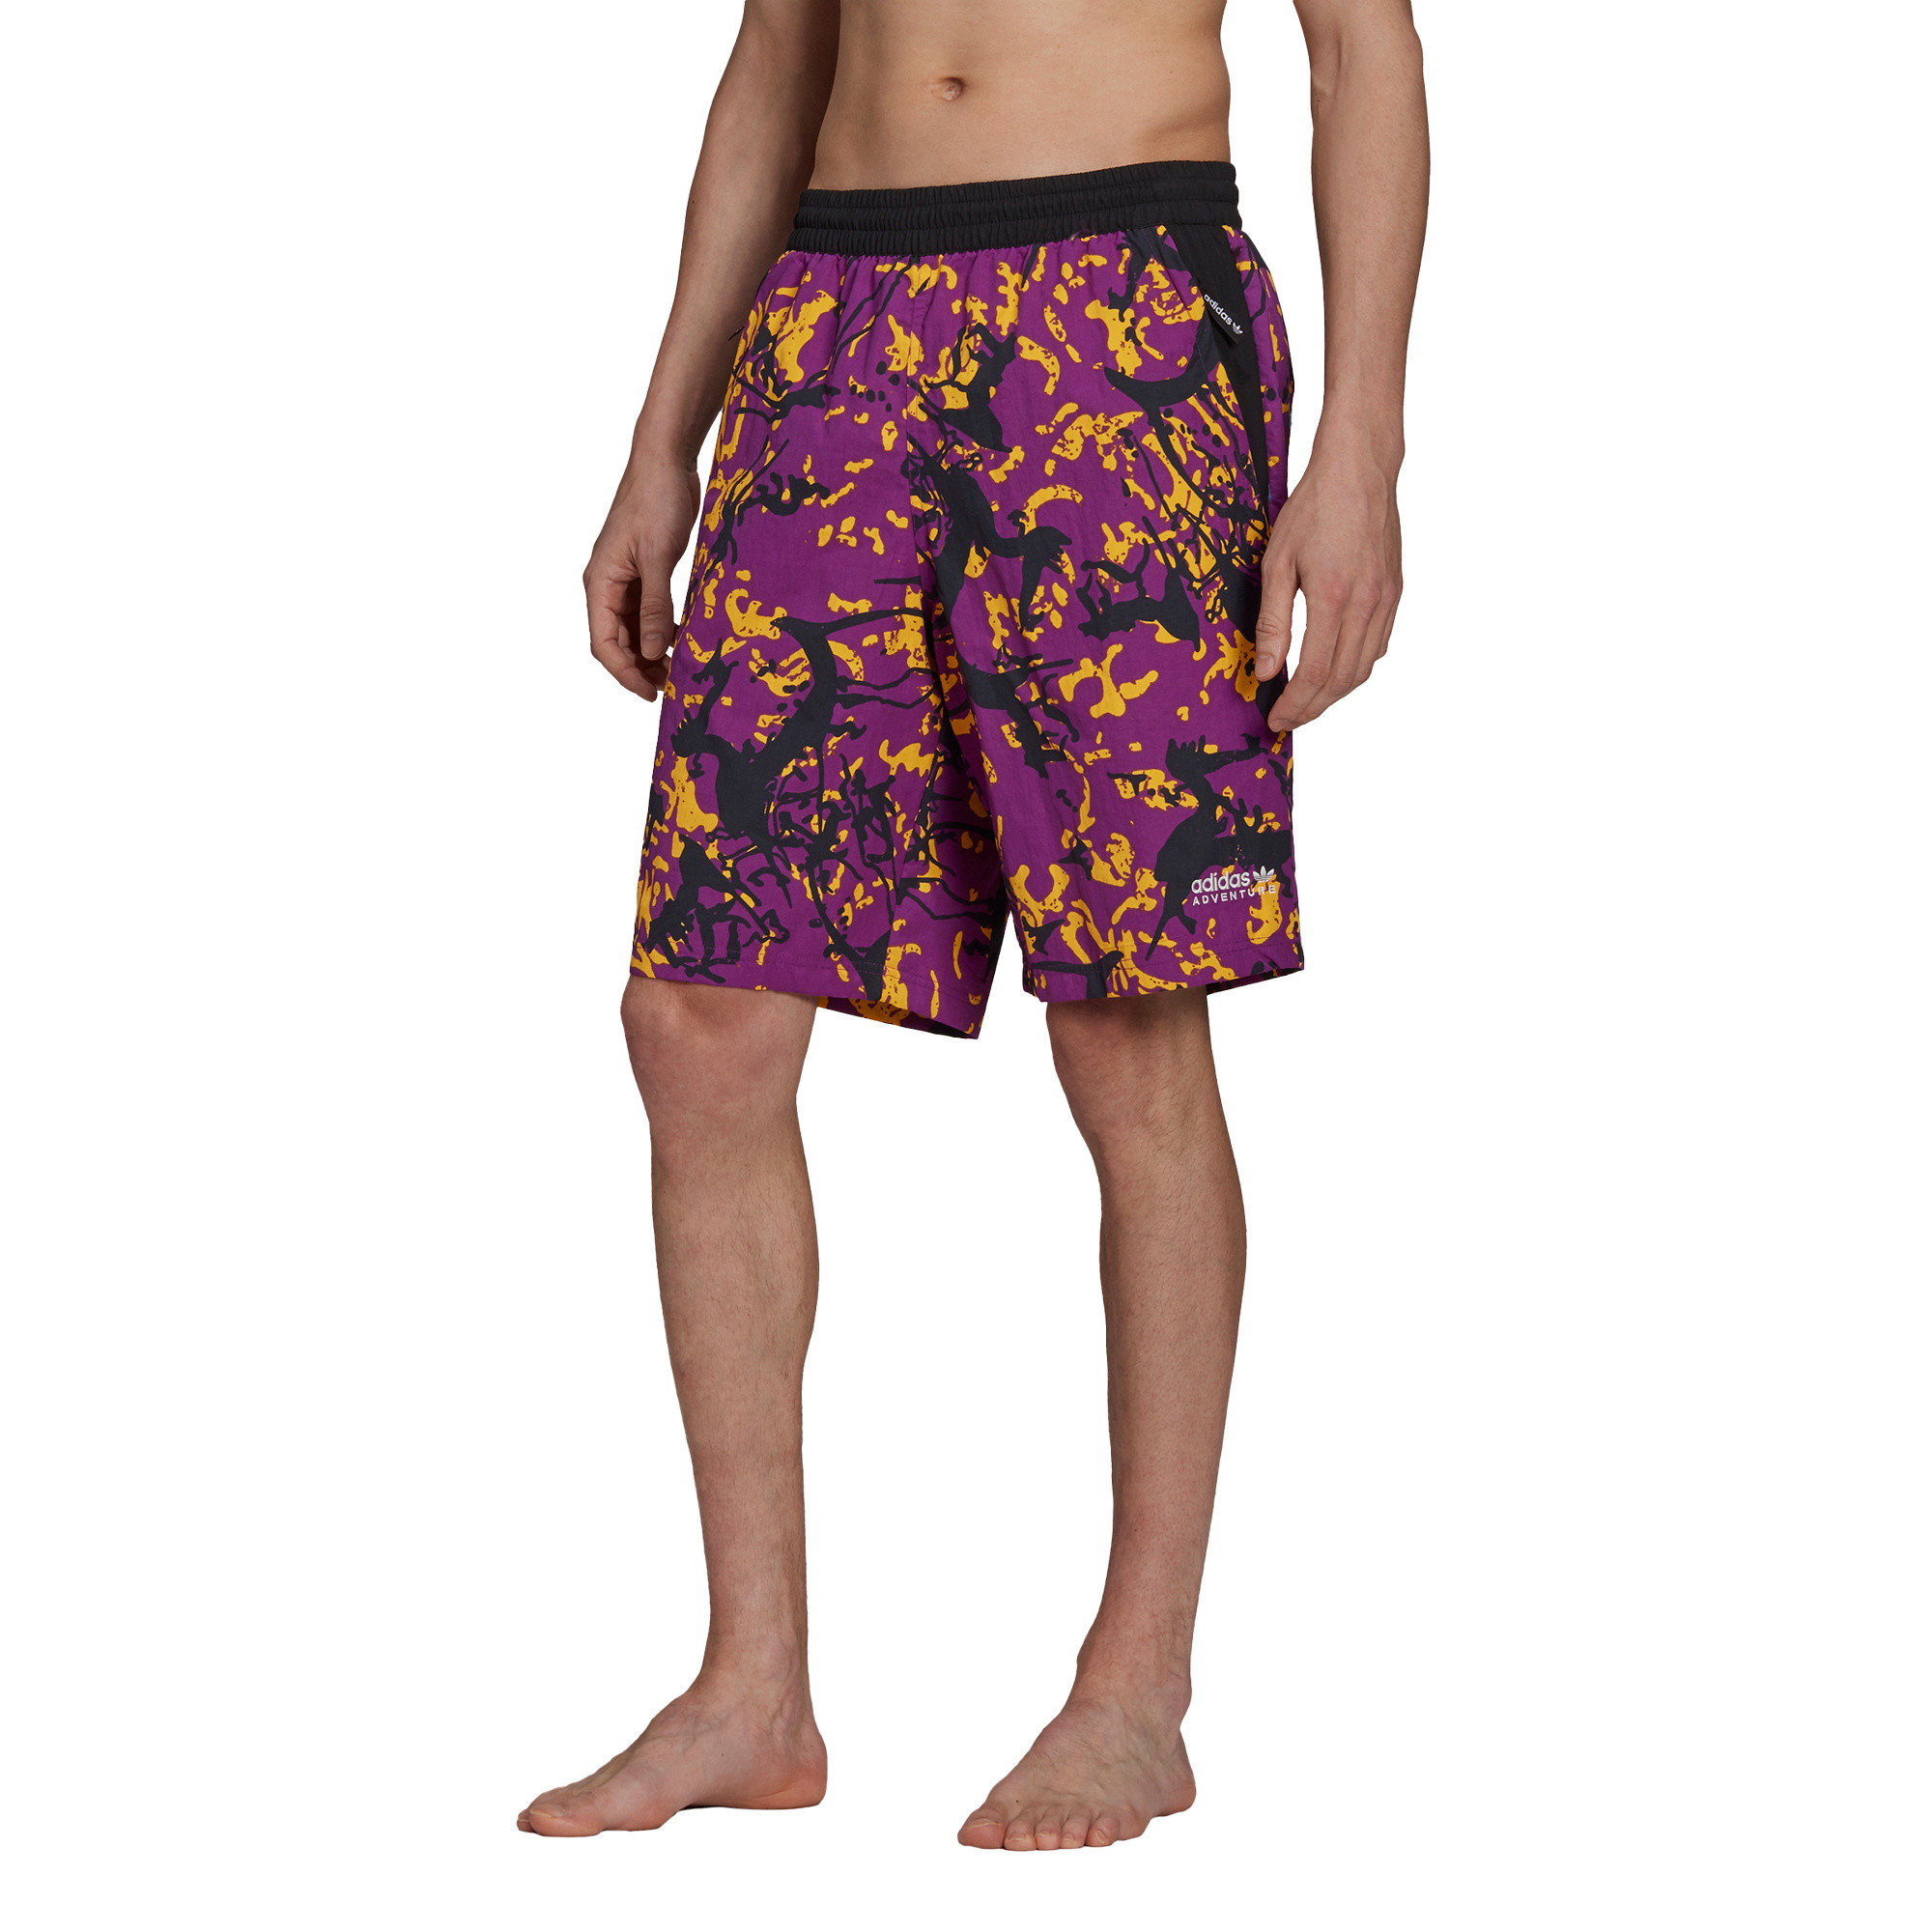 Shorts adidas Adventure Archive Printed Woven, Multicolor, large image number 1